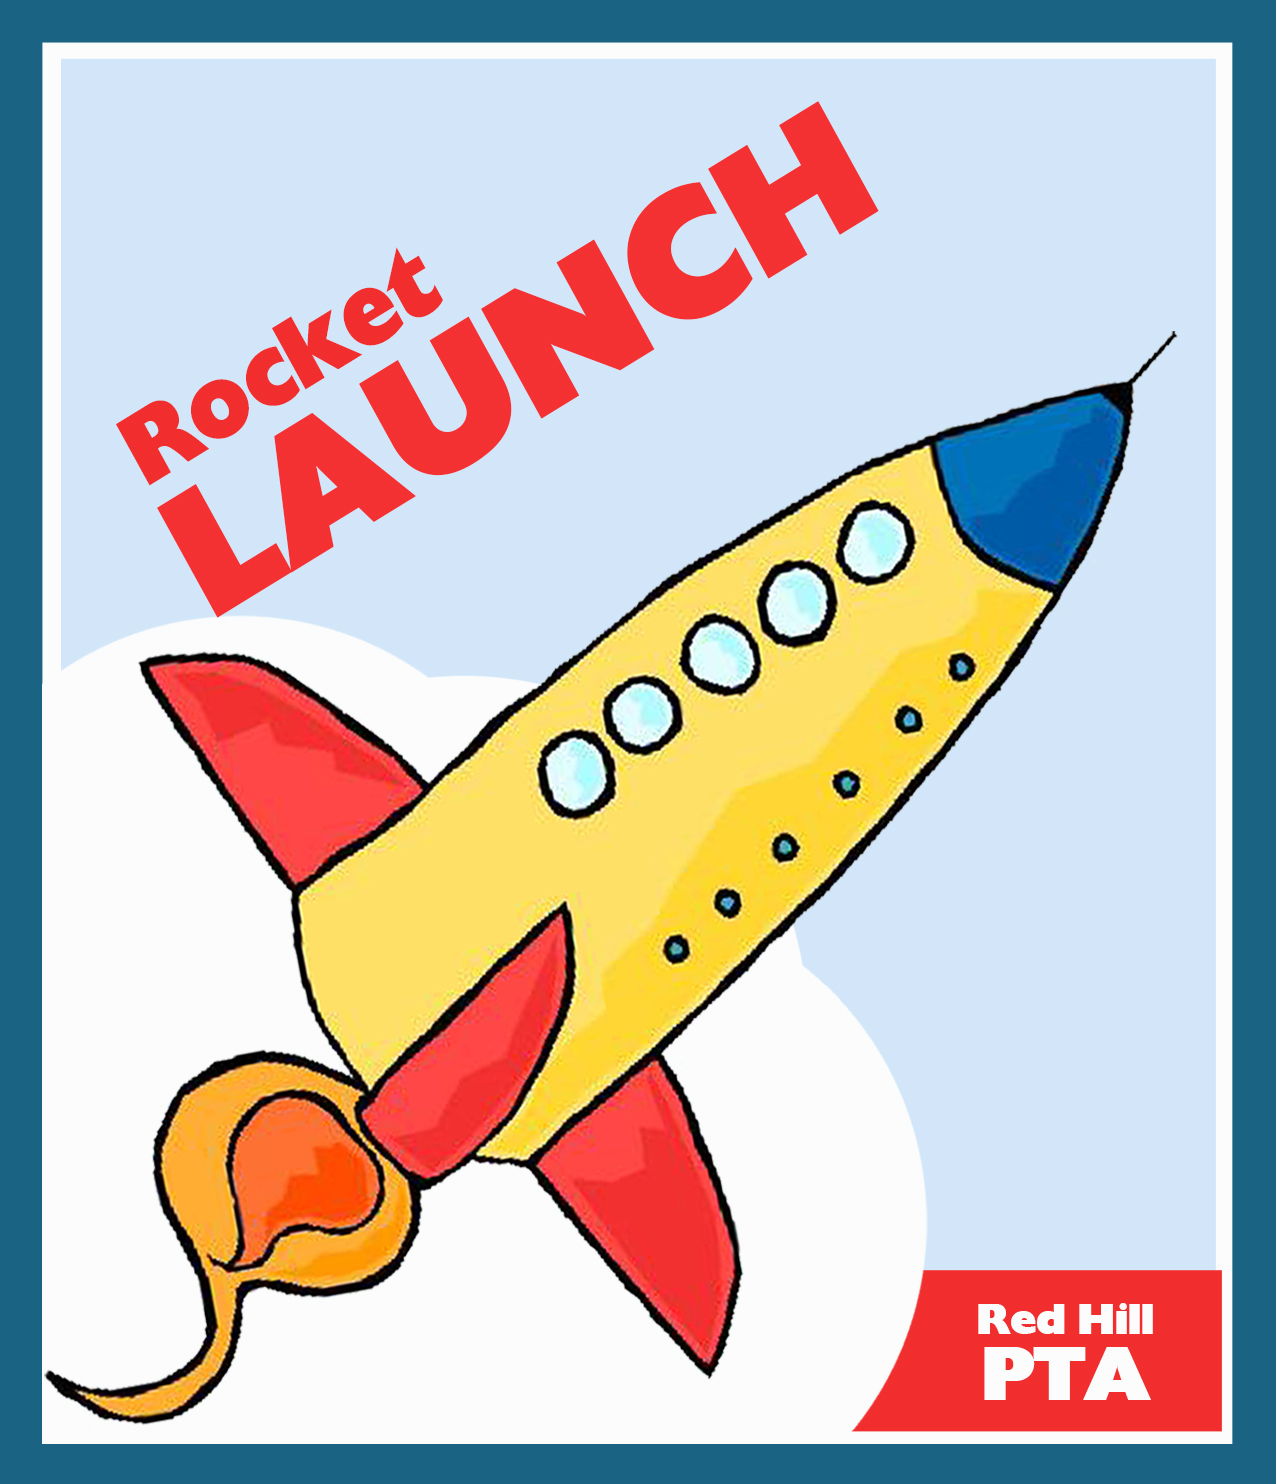 Rocket Launch Clip Art.jpg